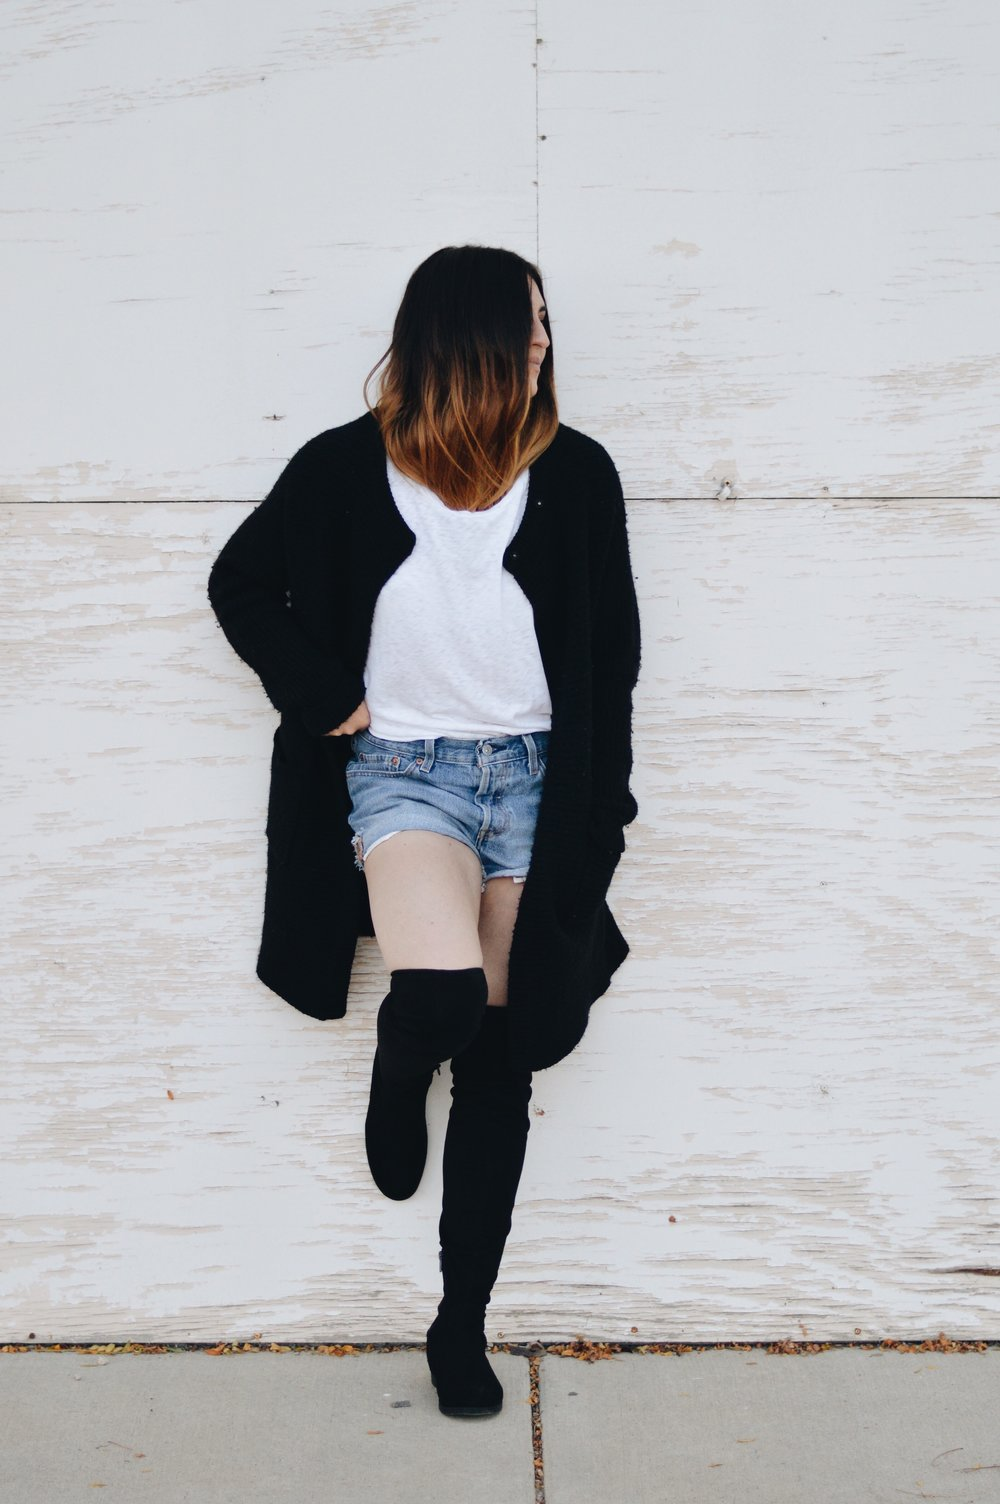 As the summer heat turns into crisp breezy air, it can be a little confusing on how to transition your summer wardrobe into fall. Somedays it's too hot, and other days its freezing. How are you supposed to pick an outfit?